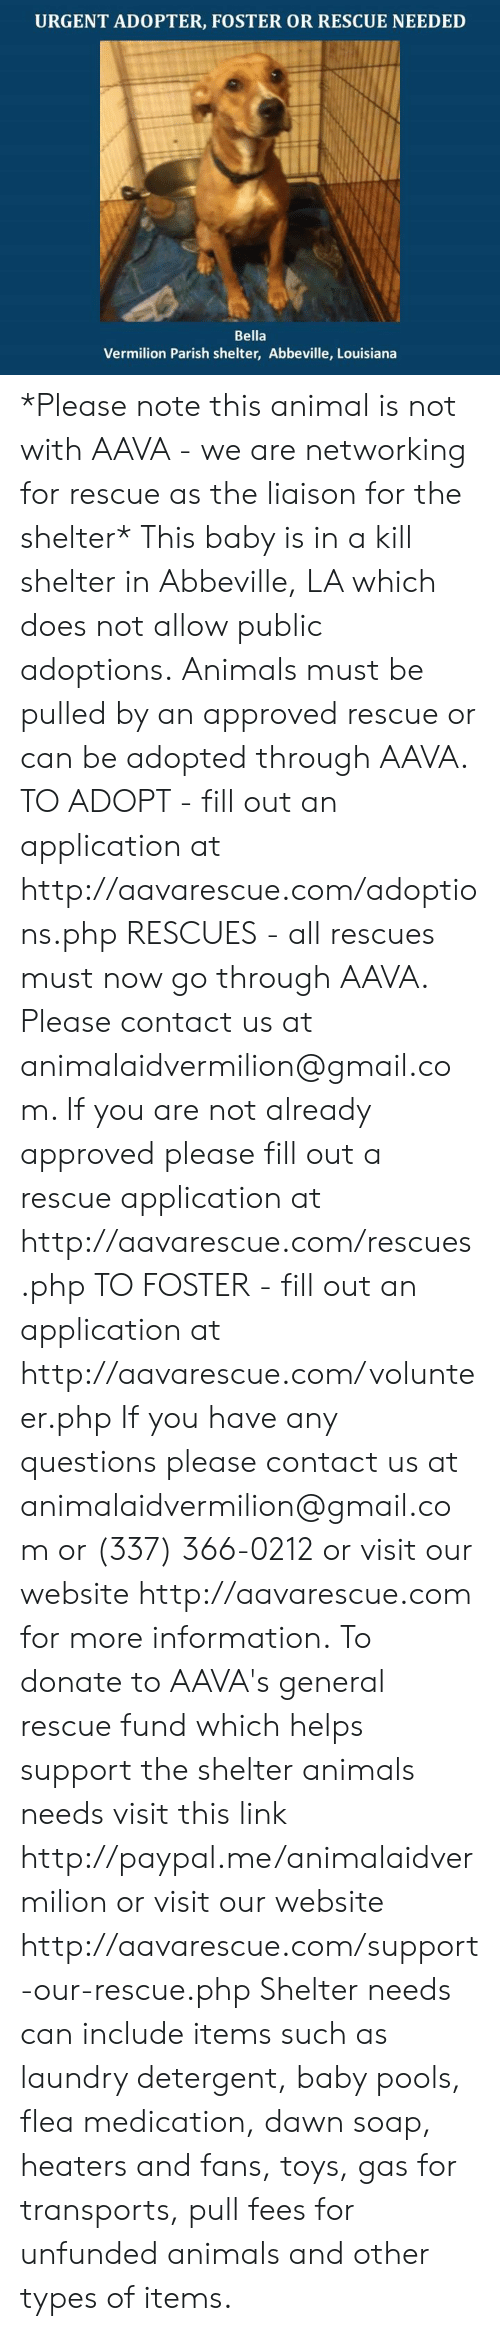 Fill Out: URGENT ADOPTER, FOSTER OR RESCUE NEEDED  Bella  Vermilion Parish shelter, Abbeville, Louisiana *Please note this animal is not with AAVA - we are networking for rescue as the liaison for the shelter* This baby is in a kill shelter in Abbeville, LA which does not allow public adoptions. Animals must be pulled by an approved rescue or can be adopted through AAVA.  TO ADOPT - fill out an application at http://aavarescue.com/adoptions.php  RESCUES - all rescues must now go through AAVA. Please contact us at animalaidvermilion@gmail.com. If you are not already approved please fill out a rescue application at http://aavarescue.com/rescues.php  TO FOSTER - fill out an application at http://aavarescue.com/volunteer.php  If you have any questions please contact us at animalaidvermilion@gmail.com or (337) 366-0212 or visit our website http://aavarescue.com for more information.  To donate to AAVA's general rescue fund which helps support the shelter animals needs visit this link http://paypal.me/animalaidvermilion or visit our website http://aavarescue.com/support-our-rescue.php Shelter needs can include items such as laundry detergent, baby pools, flea medication, dawn soap, heaters and fans, toys, gas for transports, pull fees for unfunded animals and other types of items.